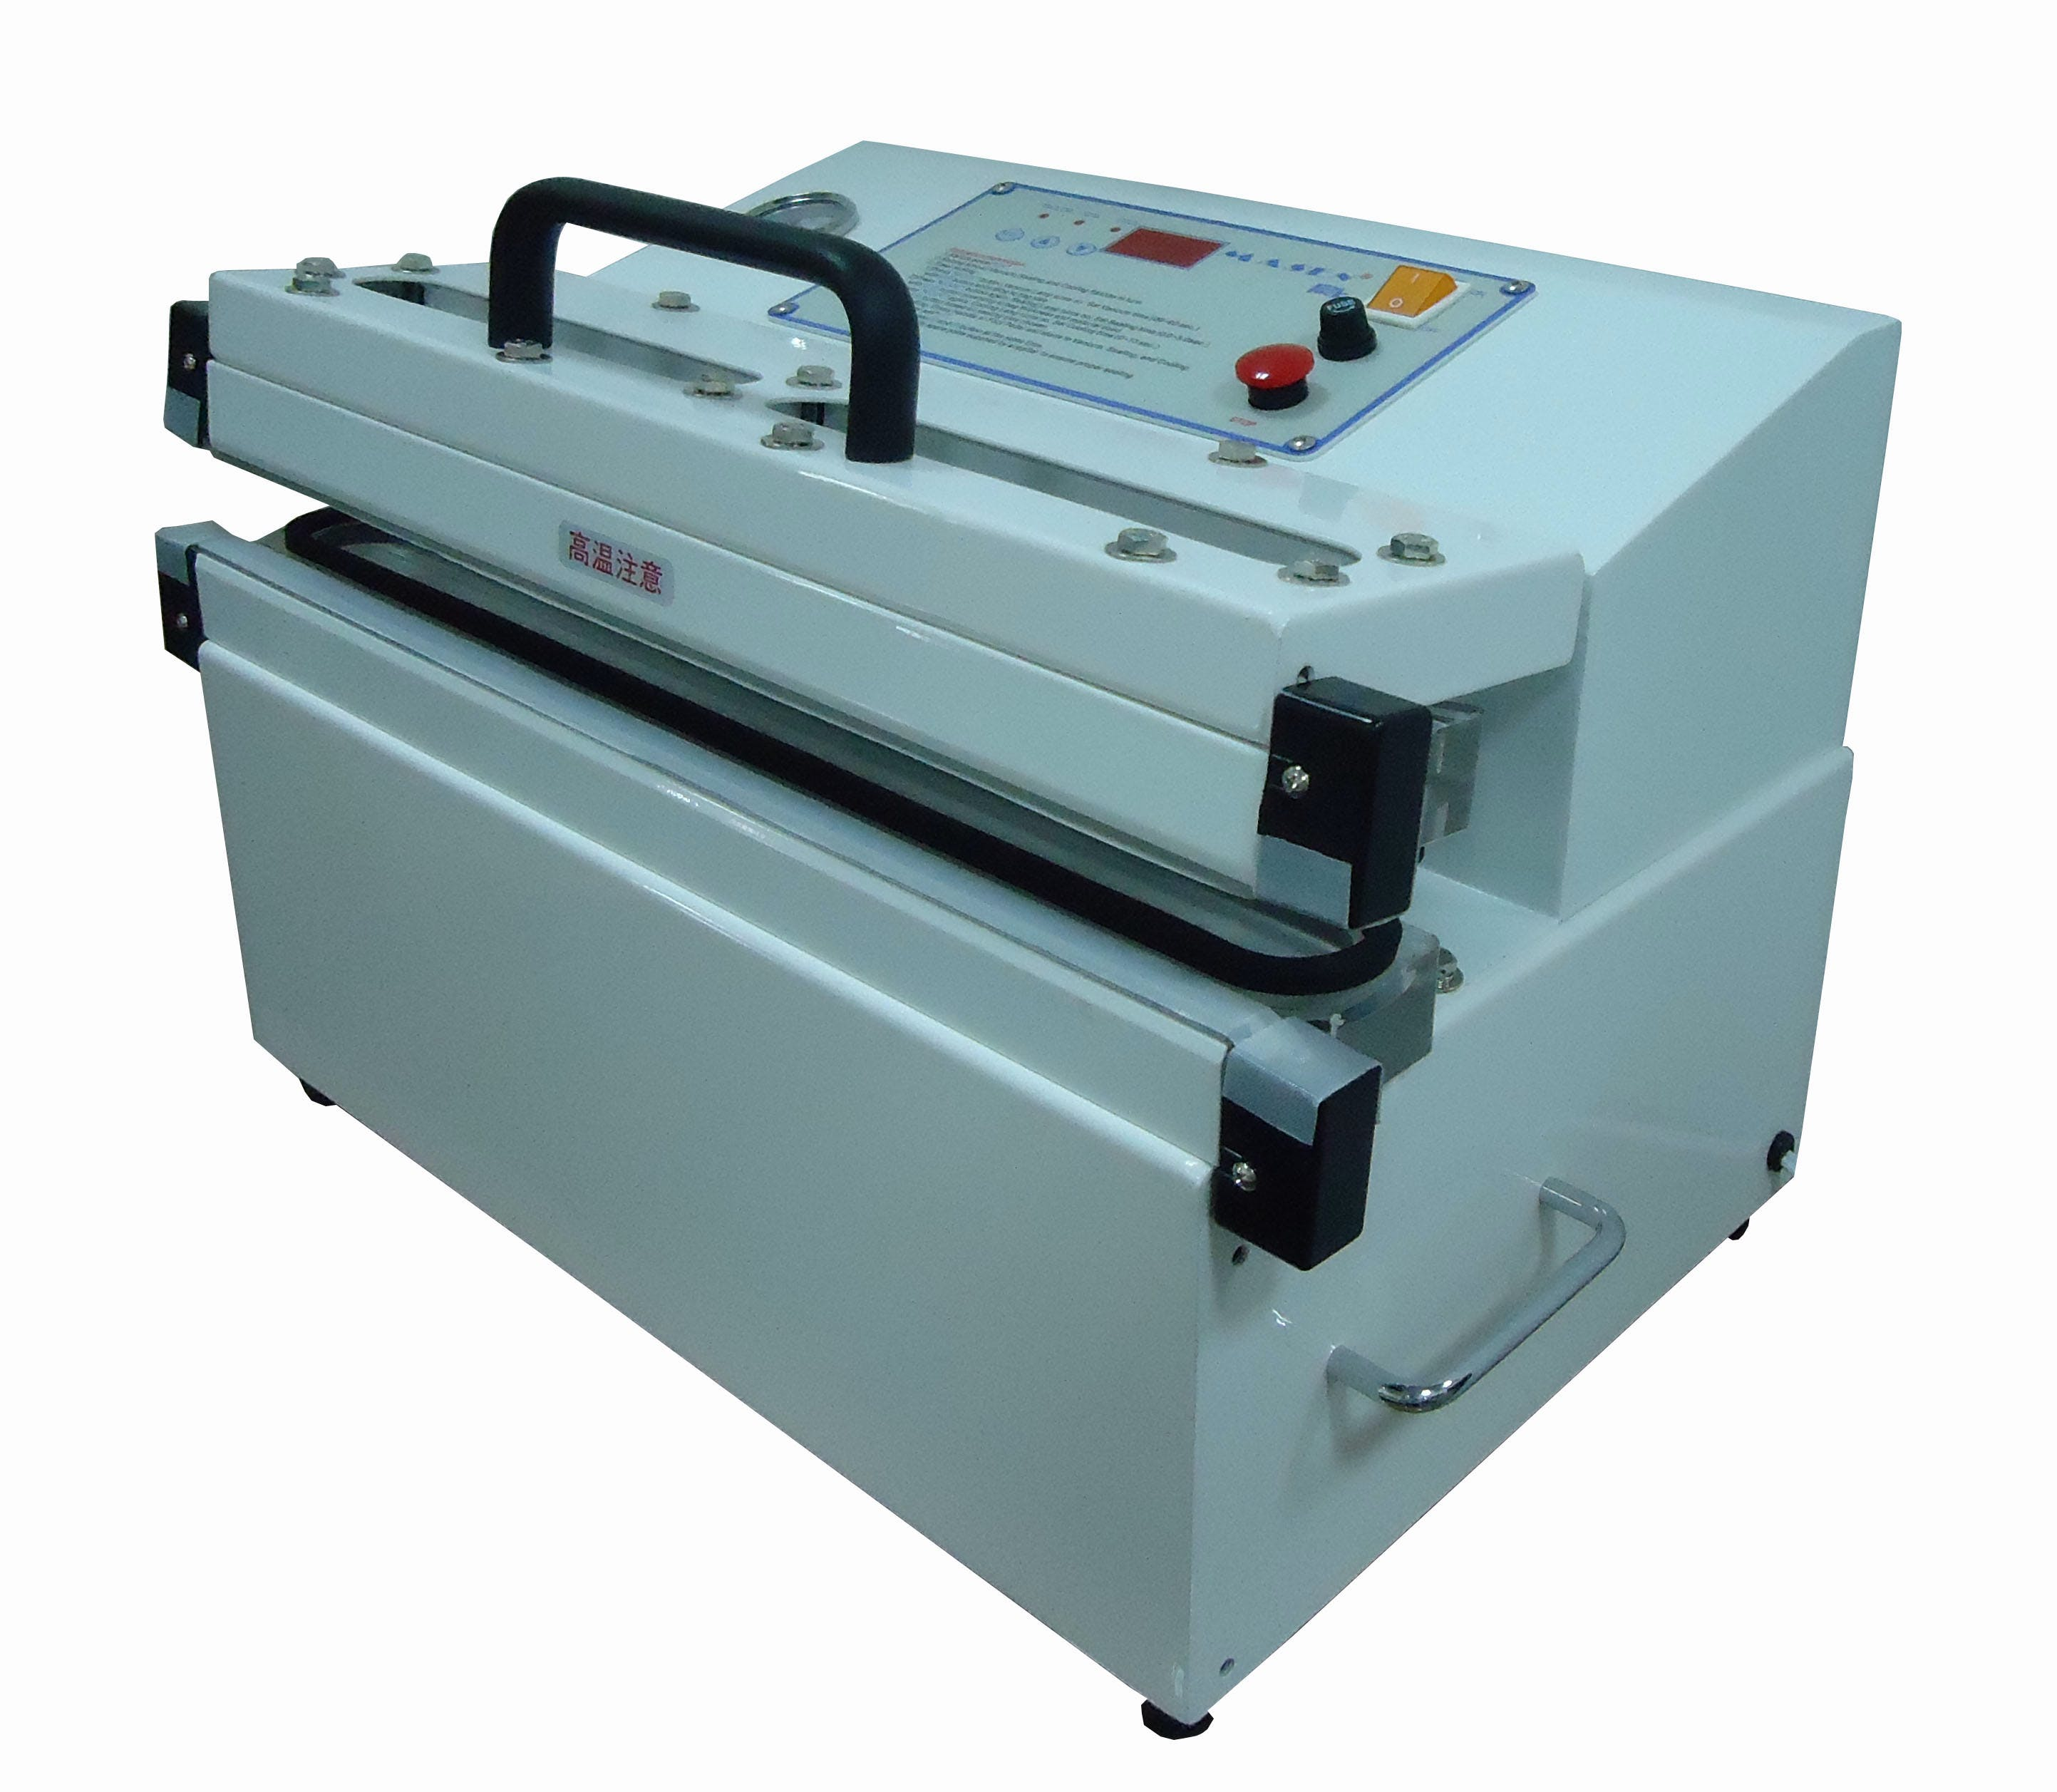 WVT-455T Vacuum Sealer for Sealing Foil Gusseted Bags (coffee bags) Vacuum packaging machine sold by Sealer Sales